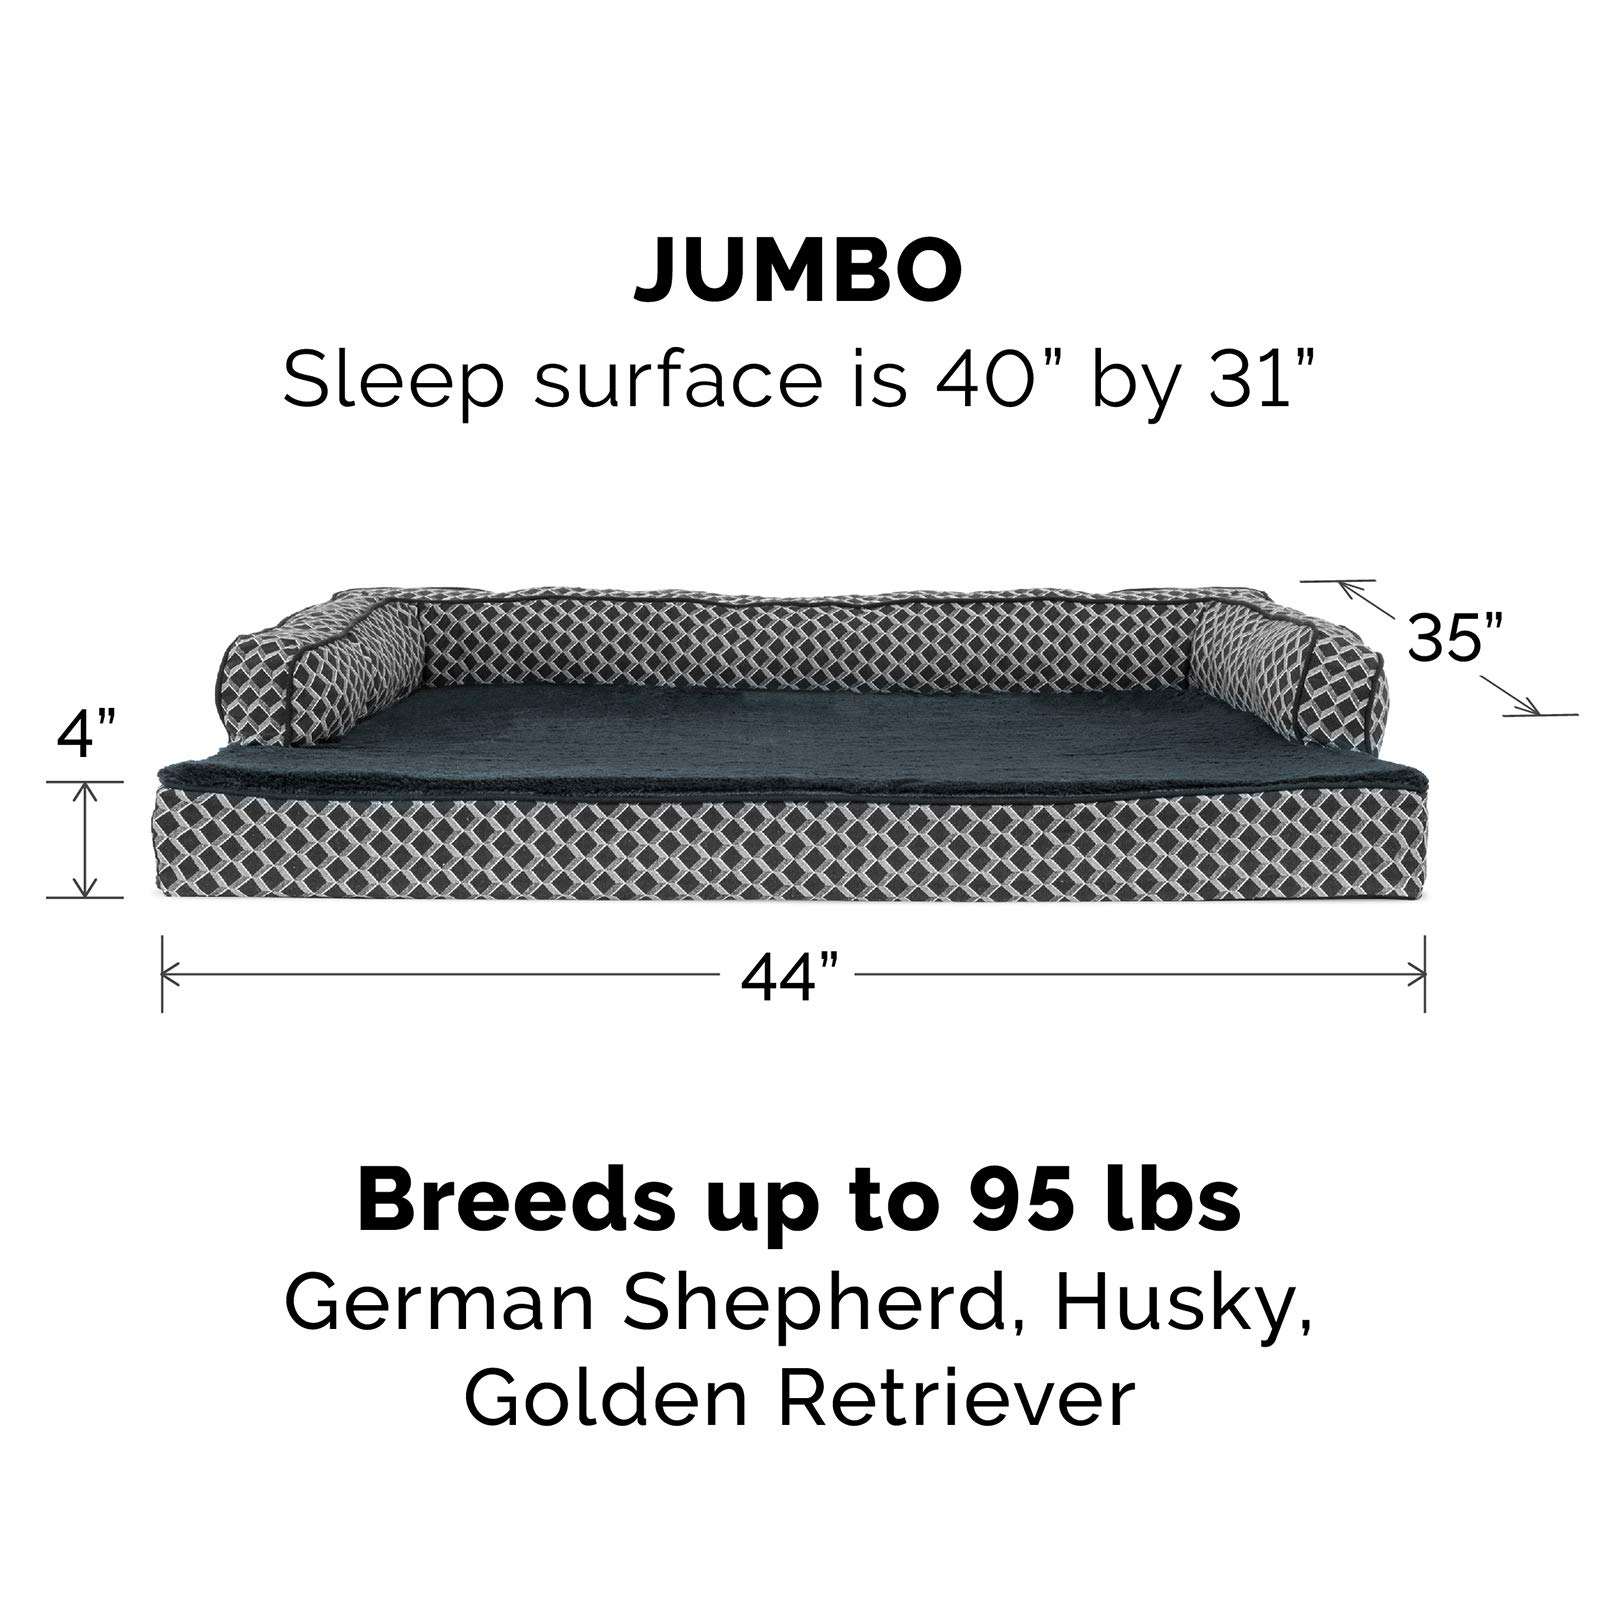 FurHaven Pet Dog Bed | Orthopedic Plush & Décor Comfy Couch Sofa-Style Pet Bed for Dogs & Cats, Diamond Gray, Jumbo by Furhaven Pet (Image #3)